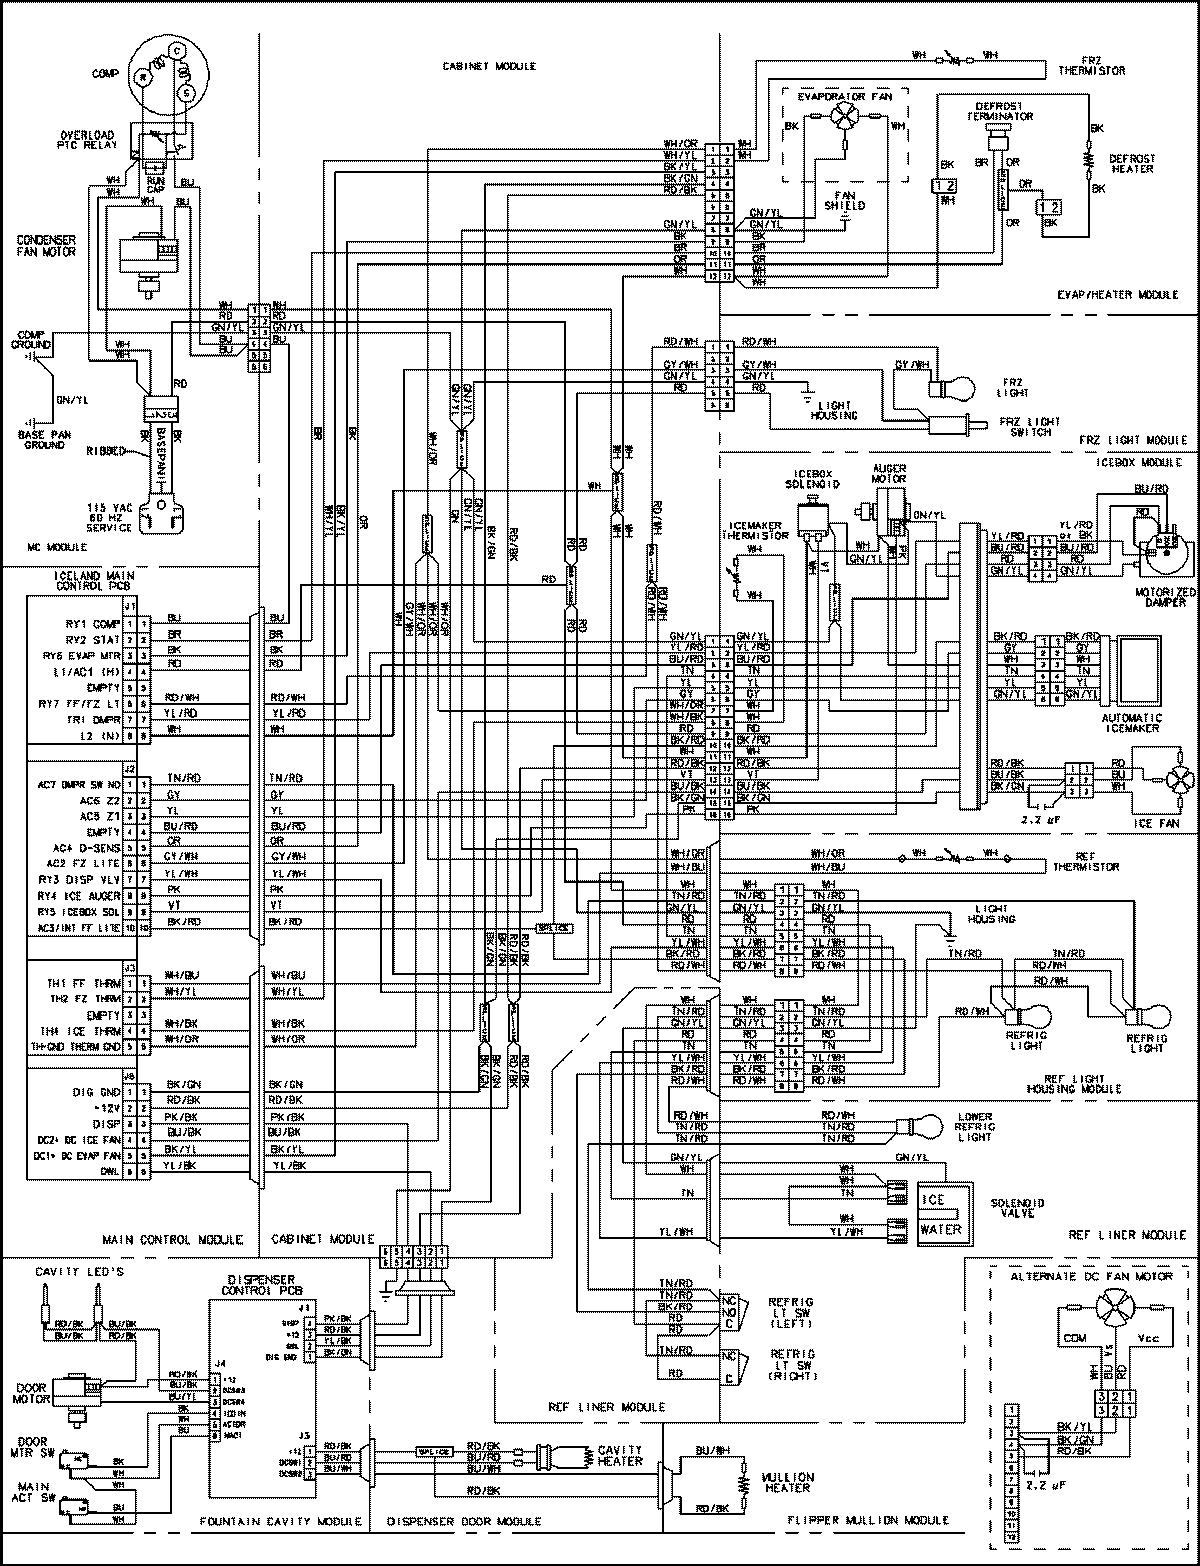 medium resolution of lg refrigerator parts diagram awesome maytag thermostat schematic wiring 8